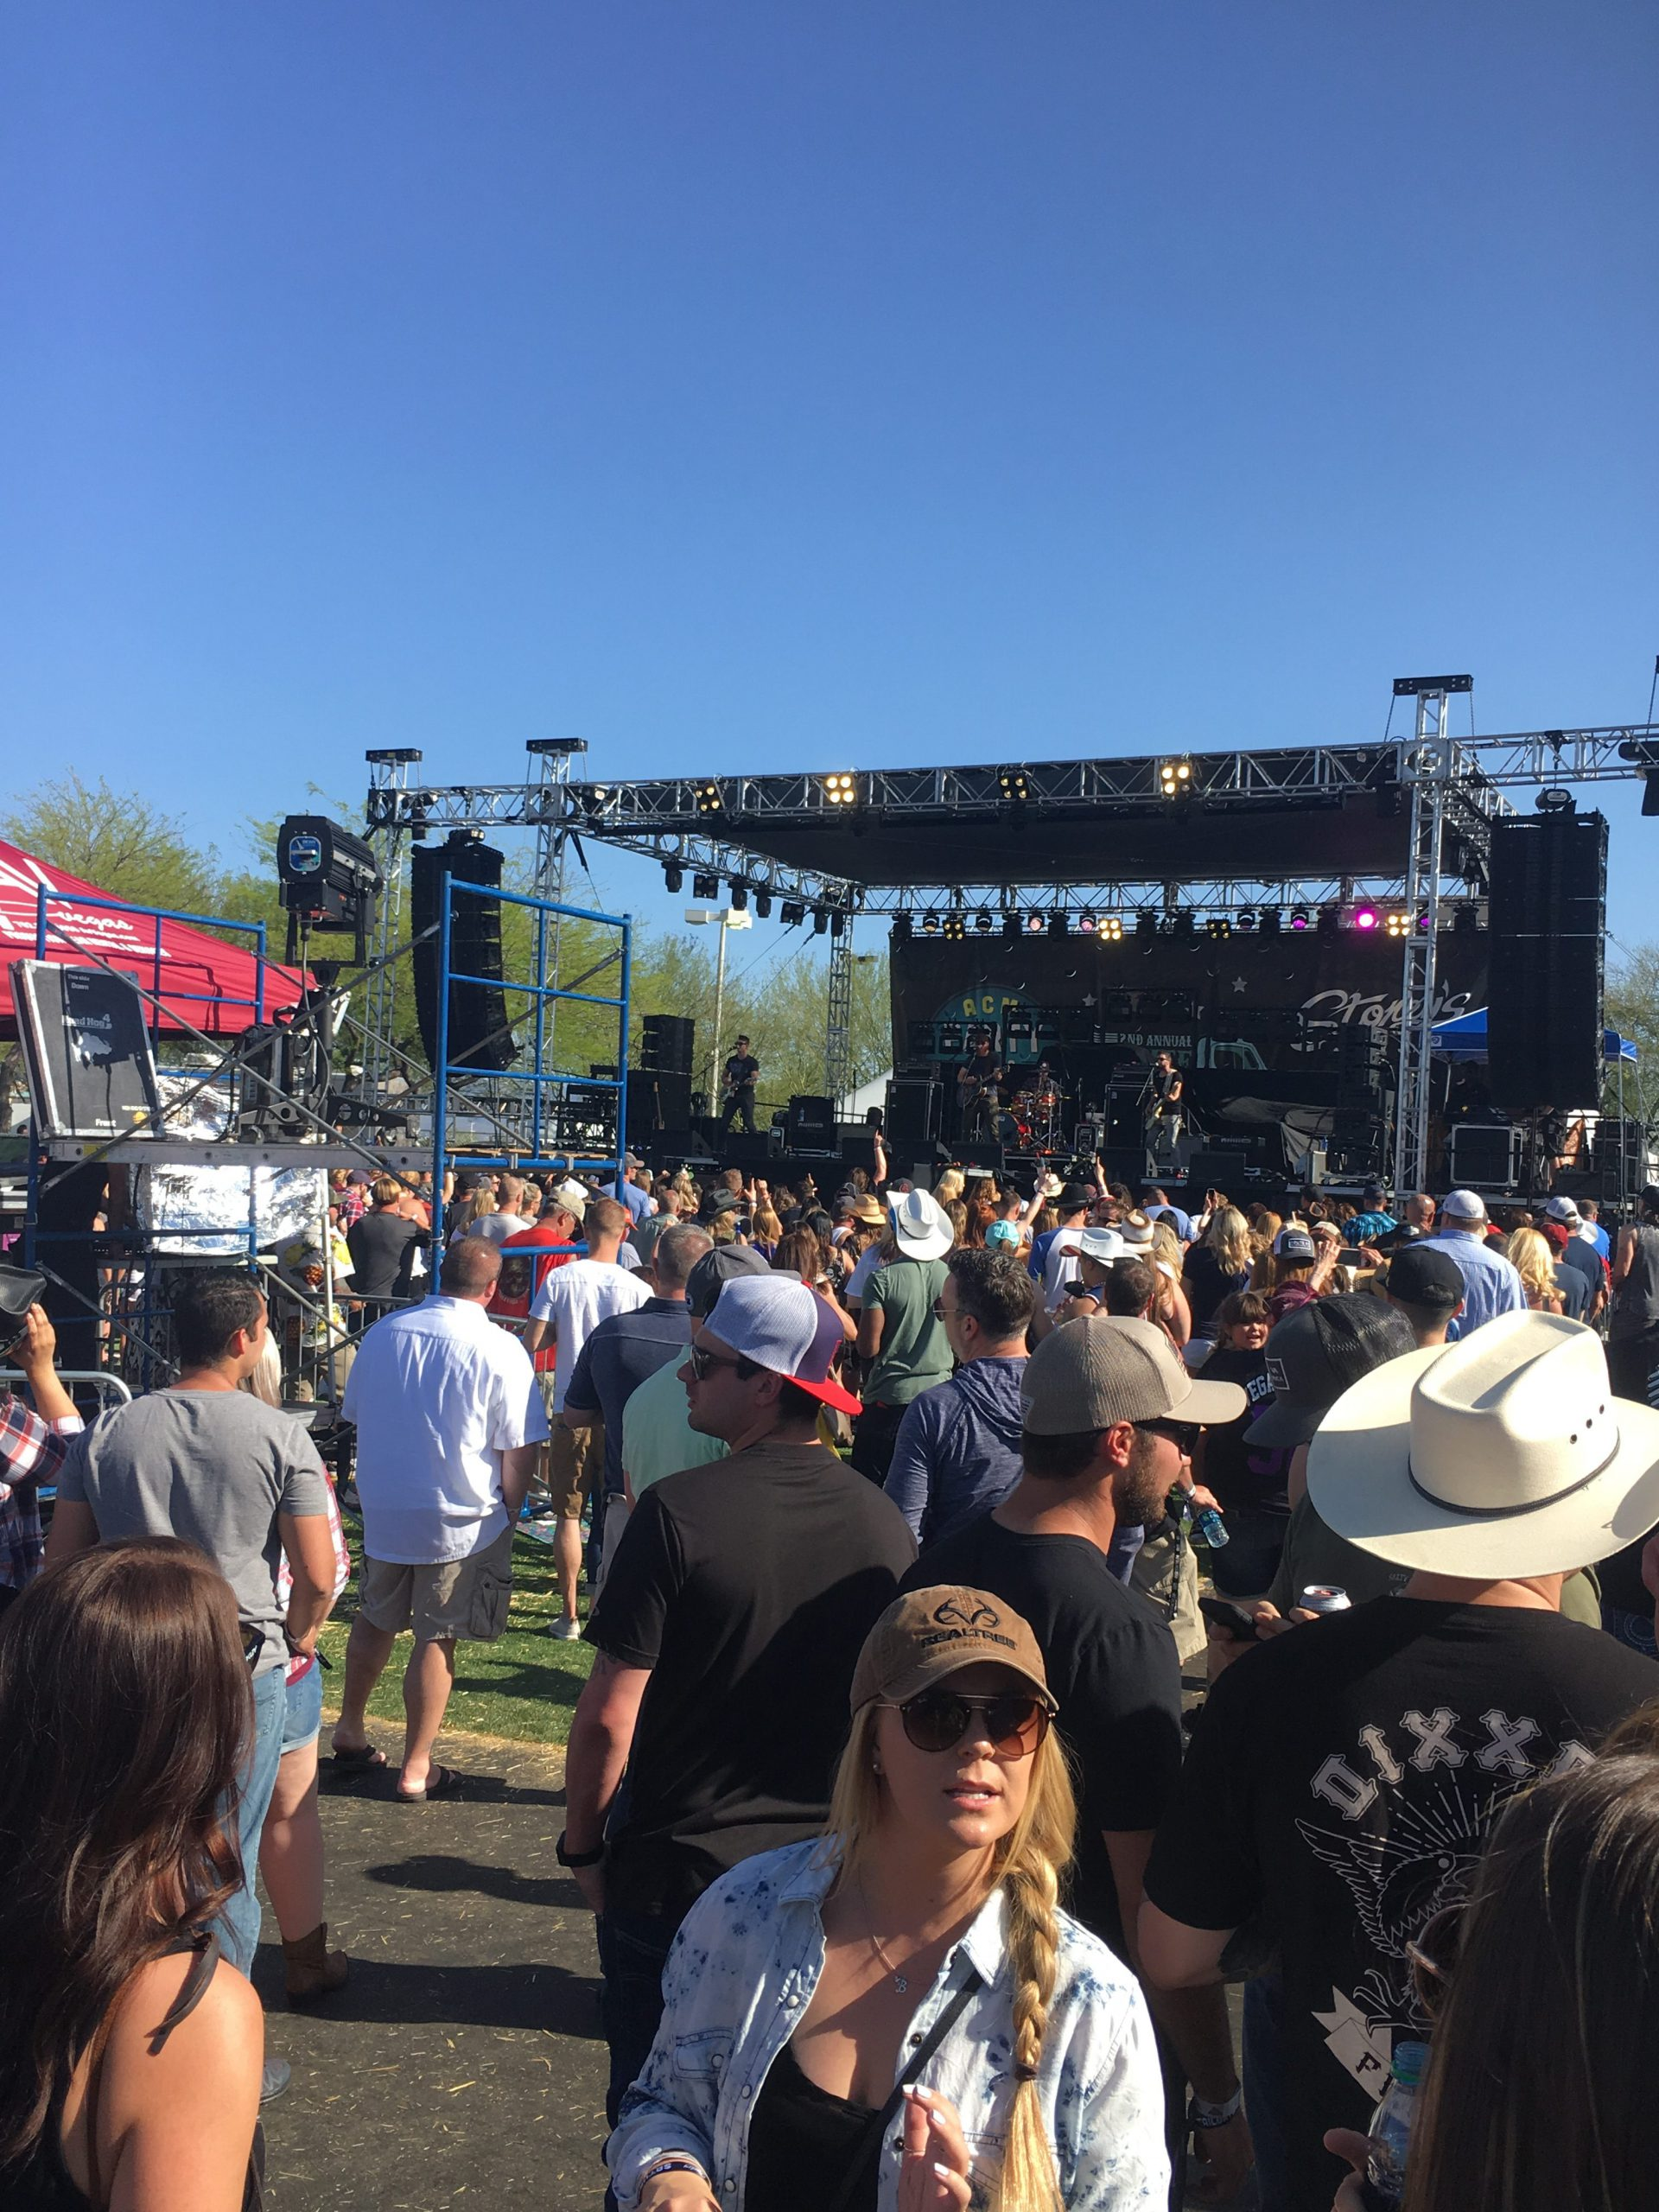 ACM Tailgate for a Cause drew thousands of music lovers on ACM weekend